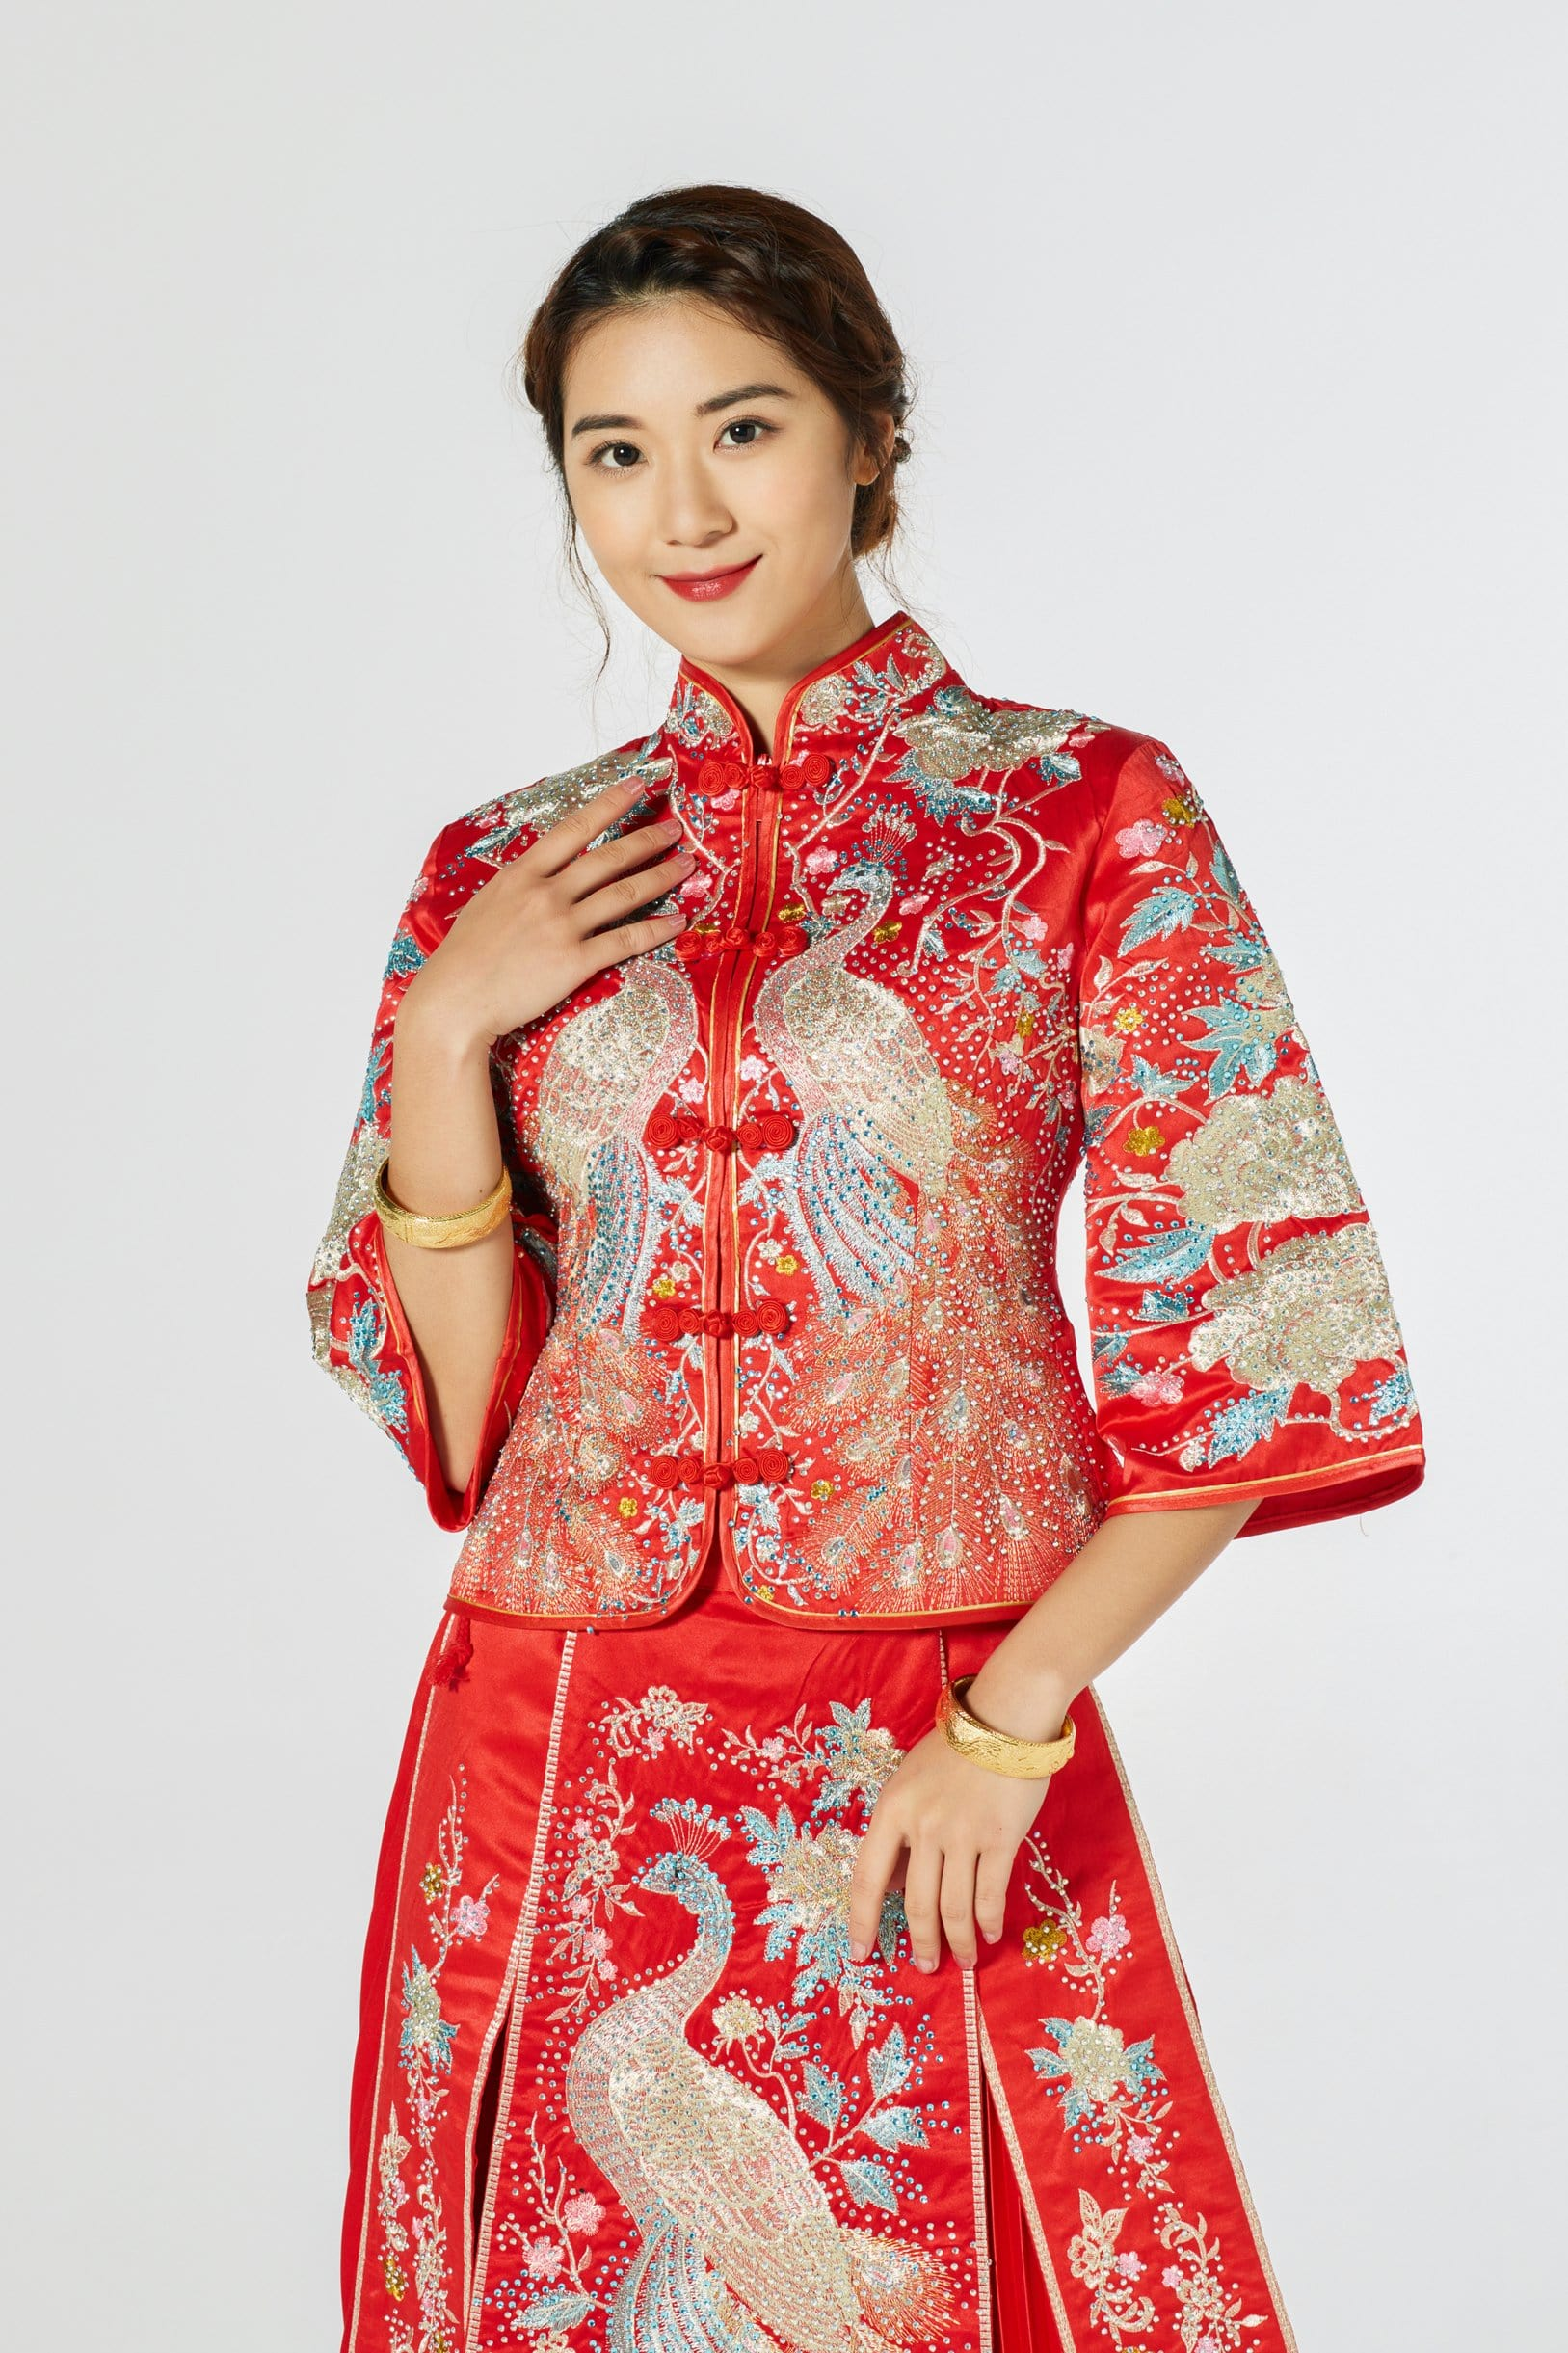 Victoria Dress - Qun Kwa - East Meets Dress